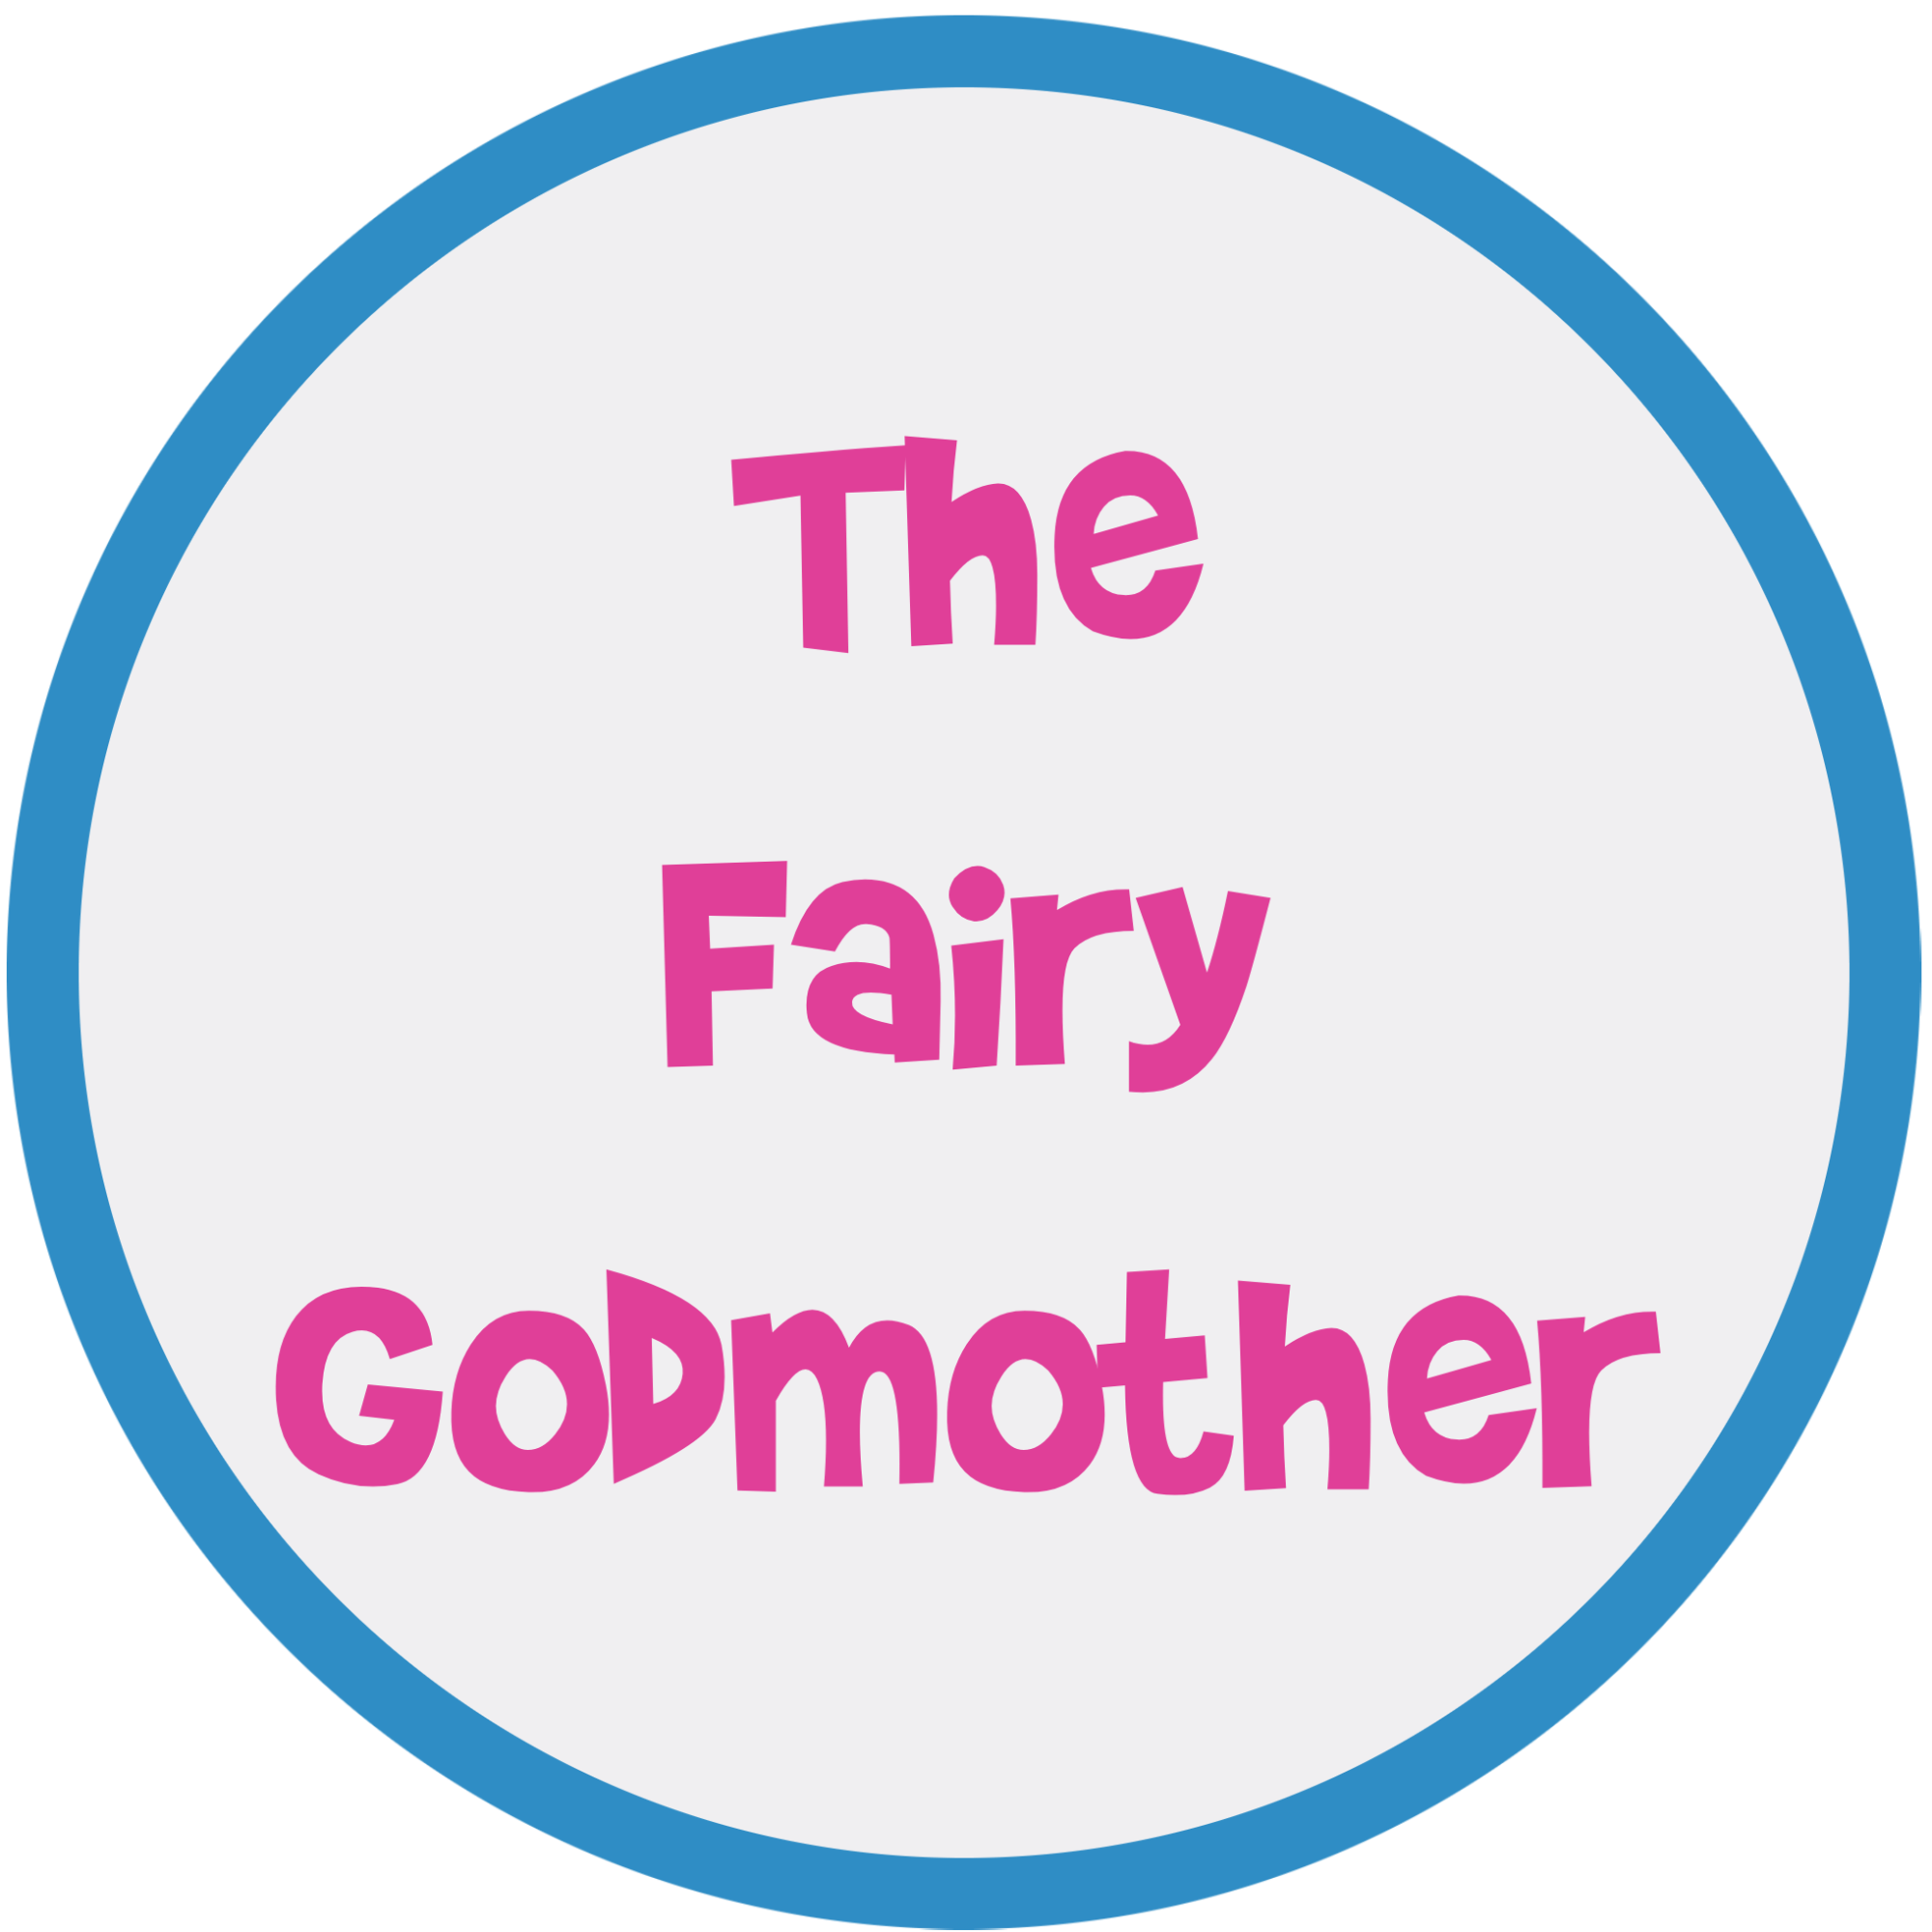 The Fairy Godmother, our characters